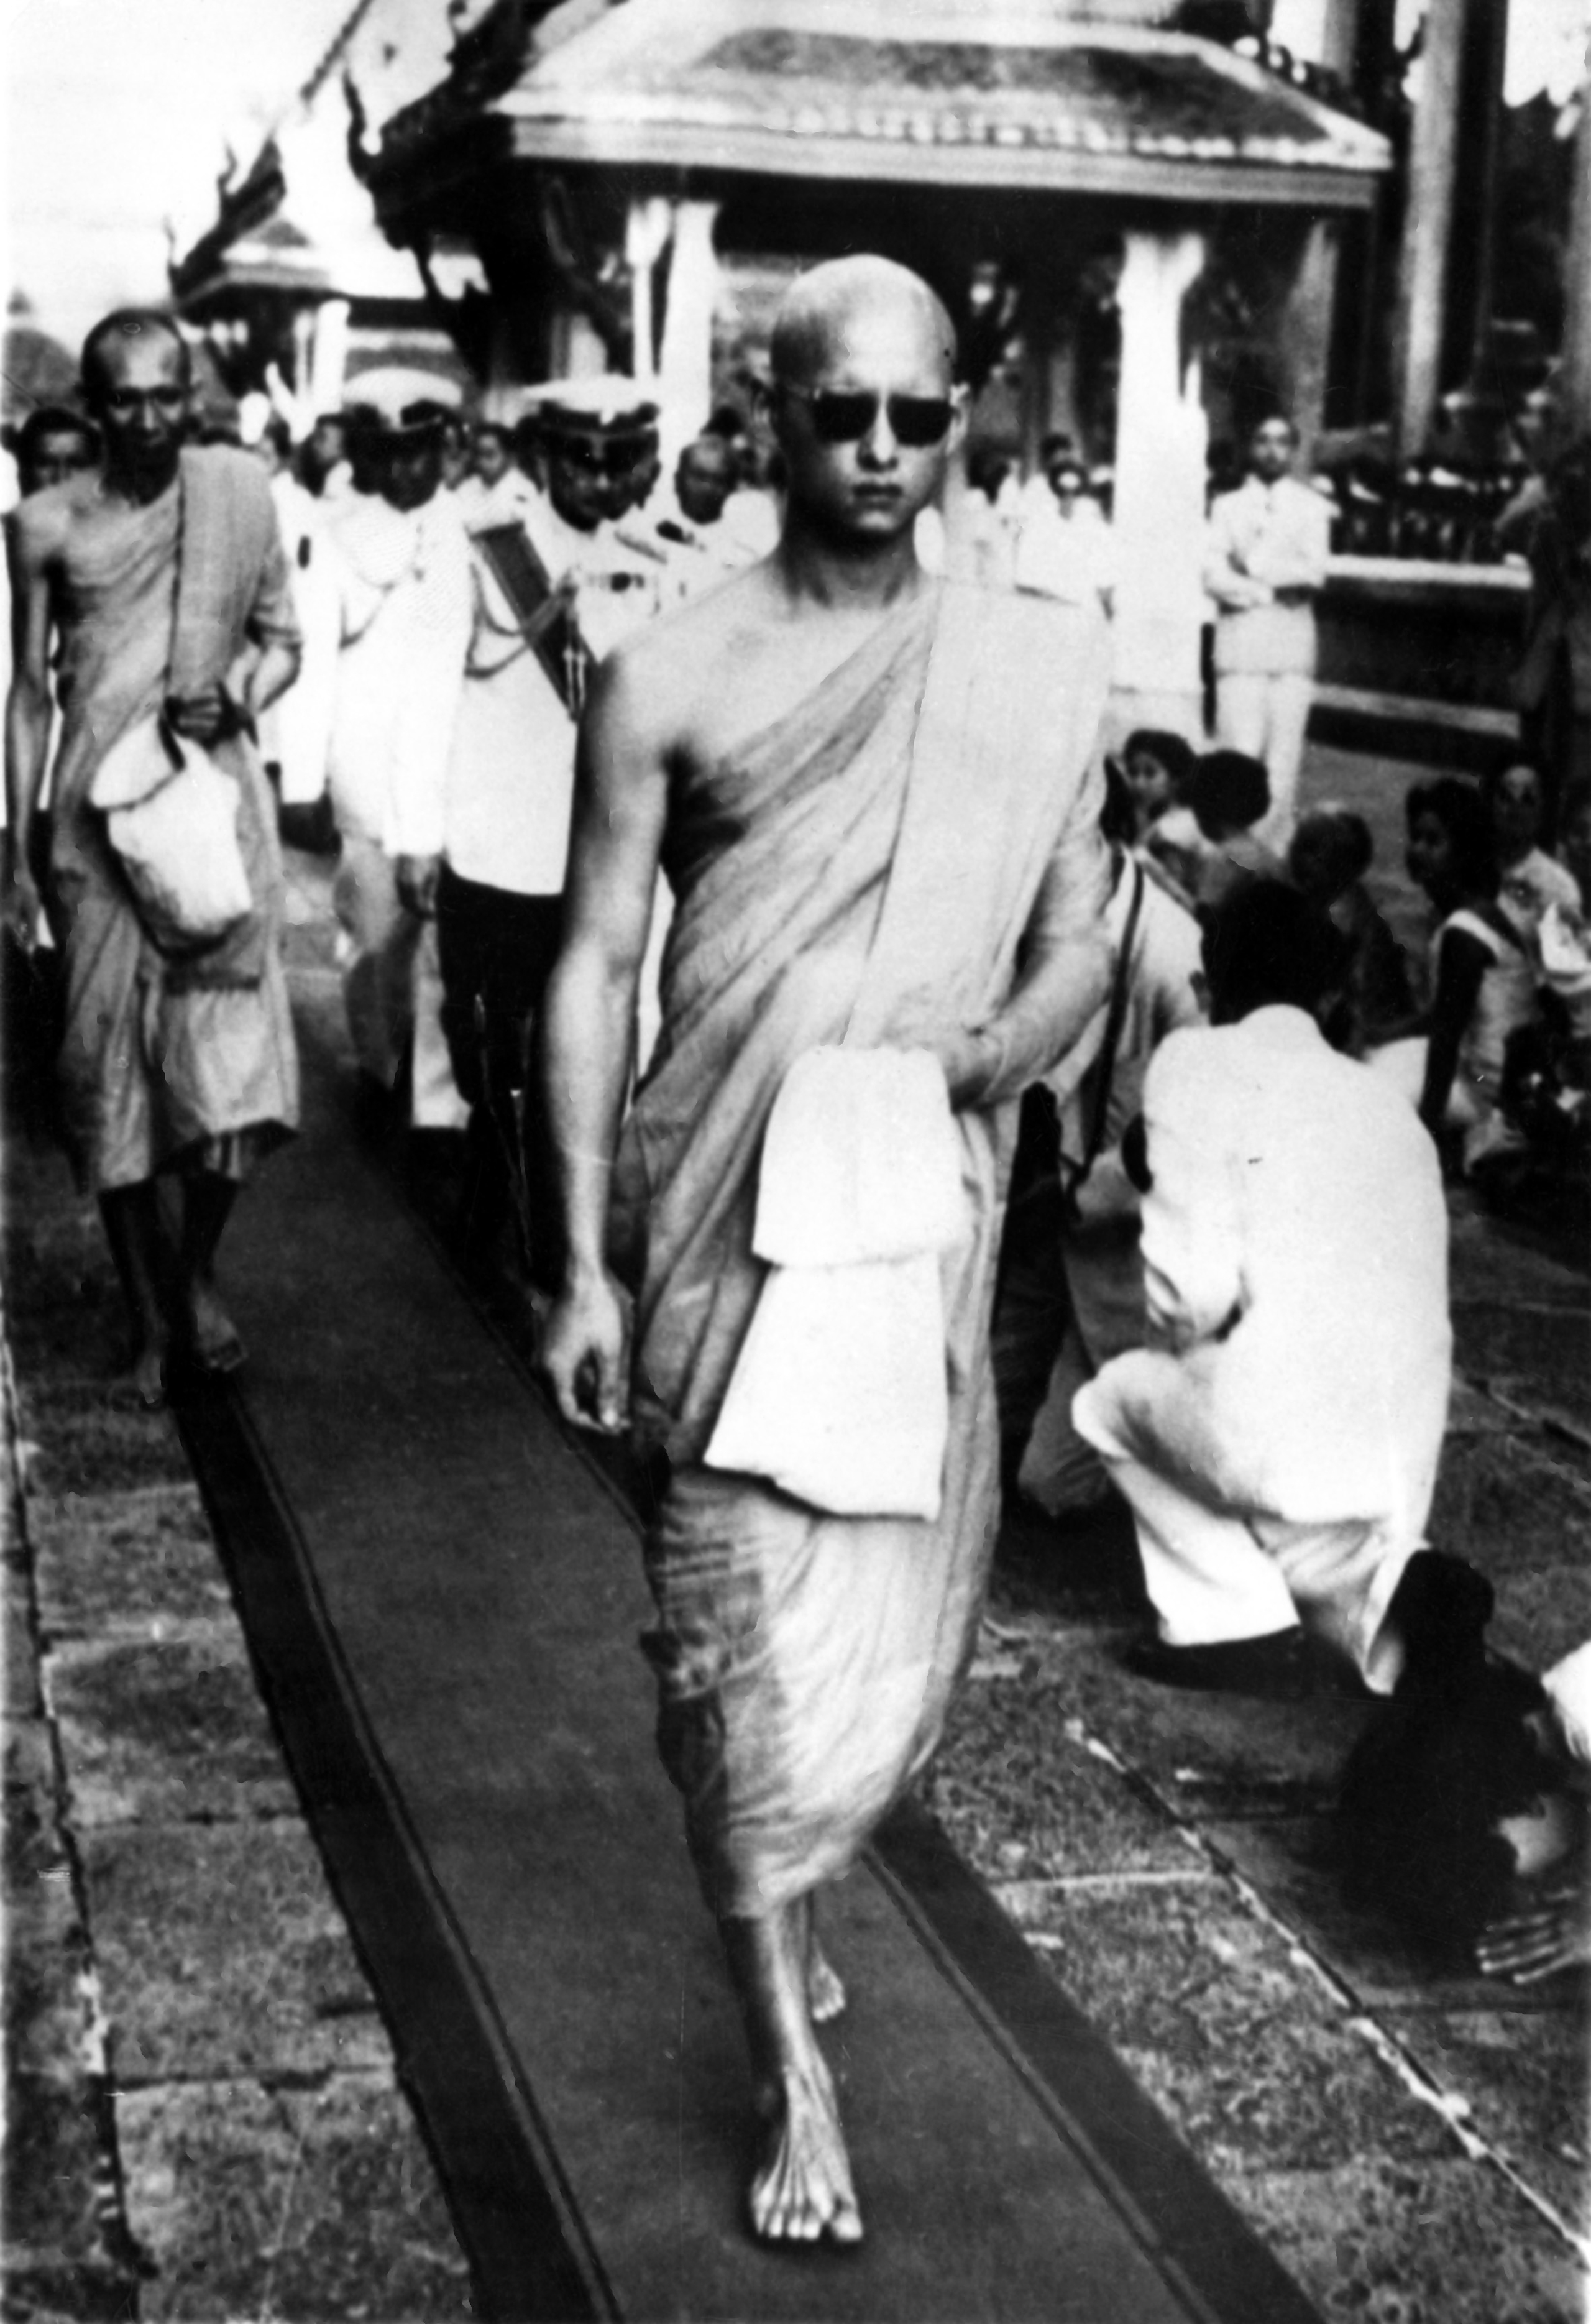 King Bhumibol Adulyadej, with head shaven and wearing the yellow robes of a monk, leaves a buddhist temple in Bangkok after being ordained a monk for two weeks in 1956.